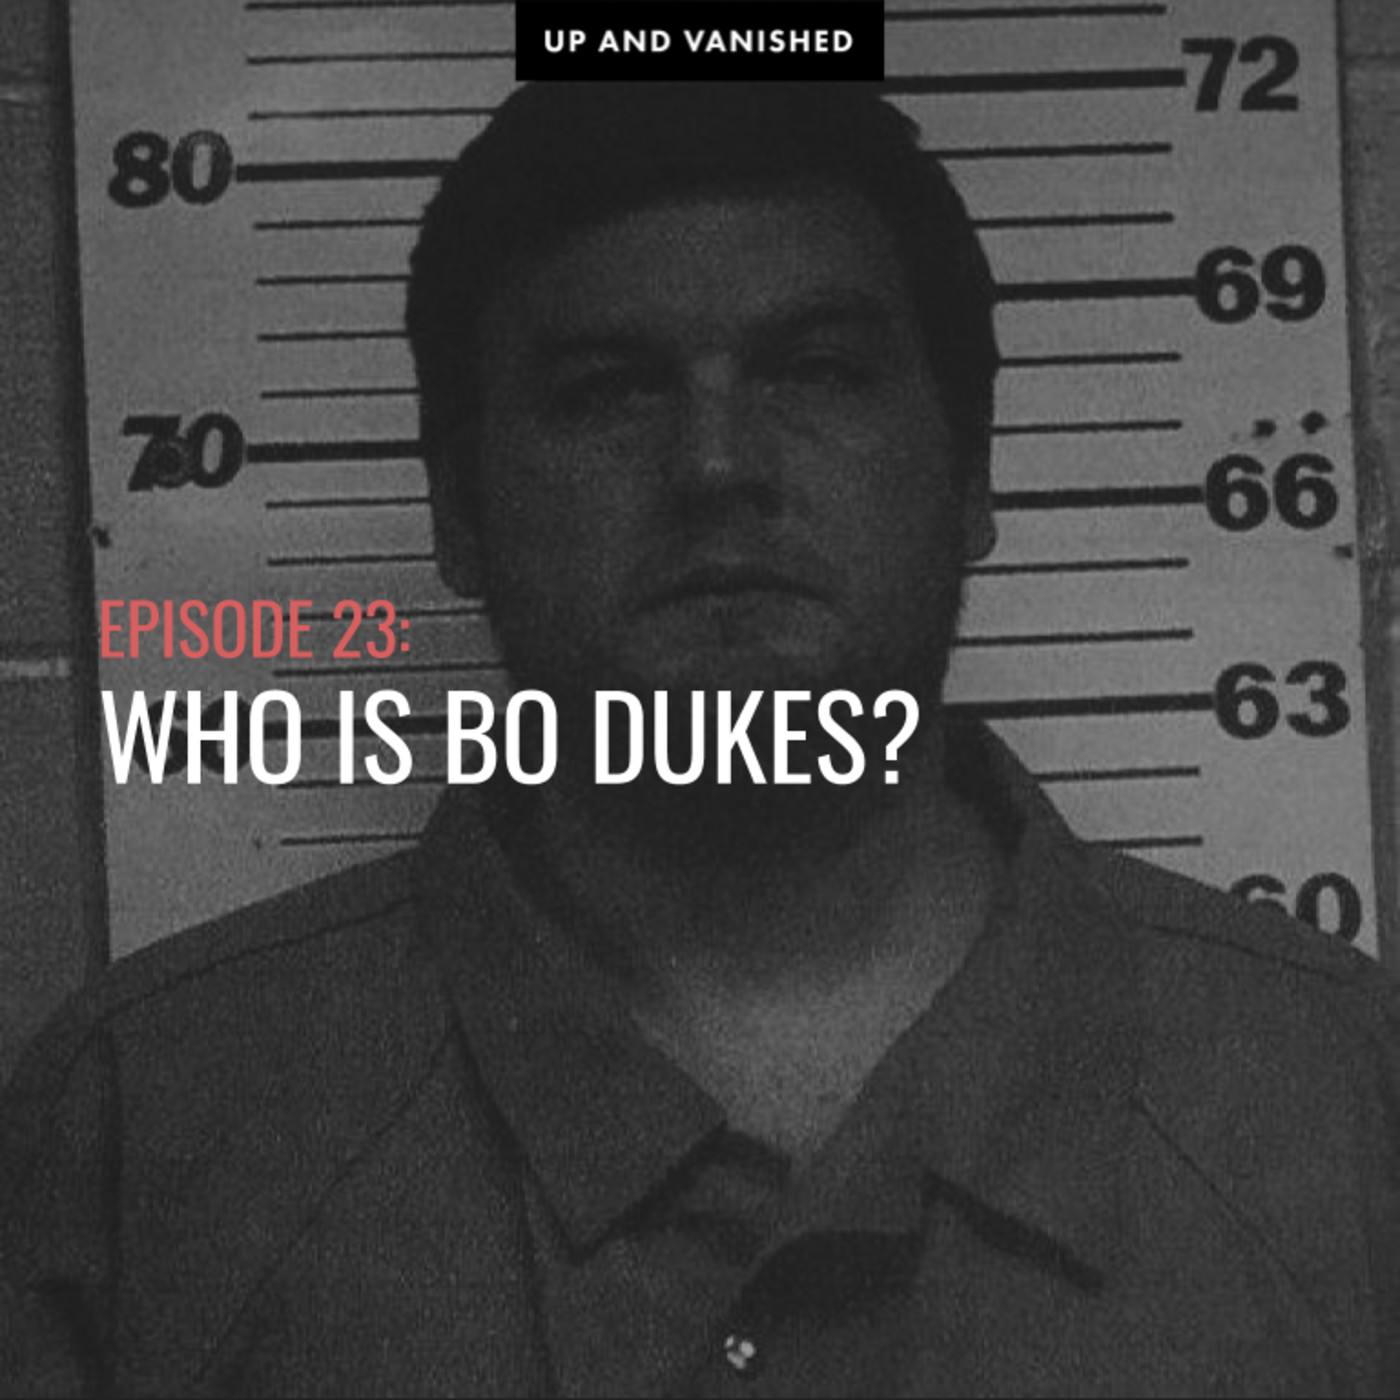 S1E23: Who is Bo Dukes?